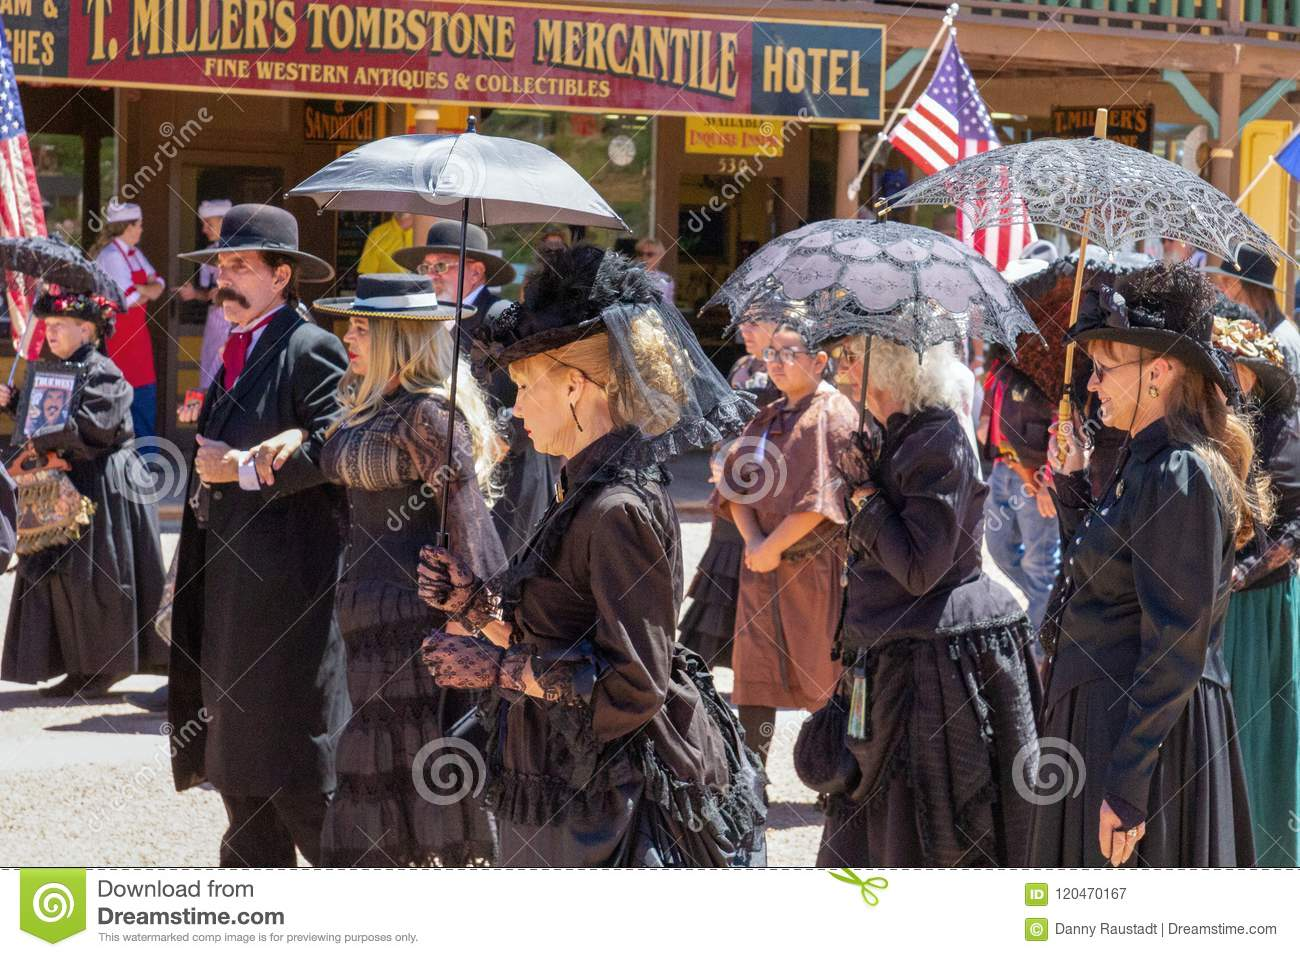 Old Wild West Characters in Tombstone